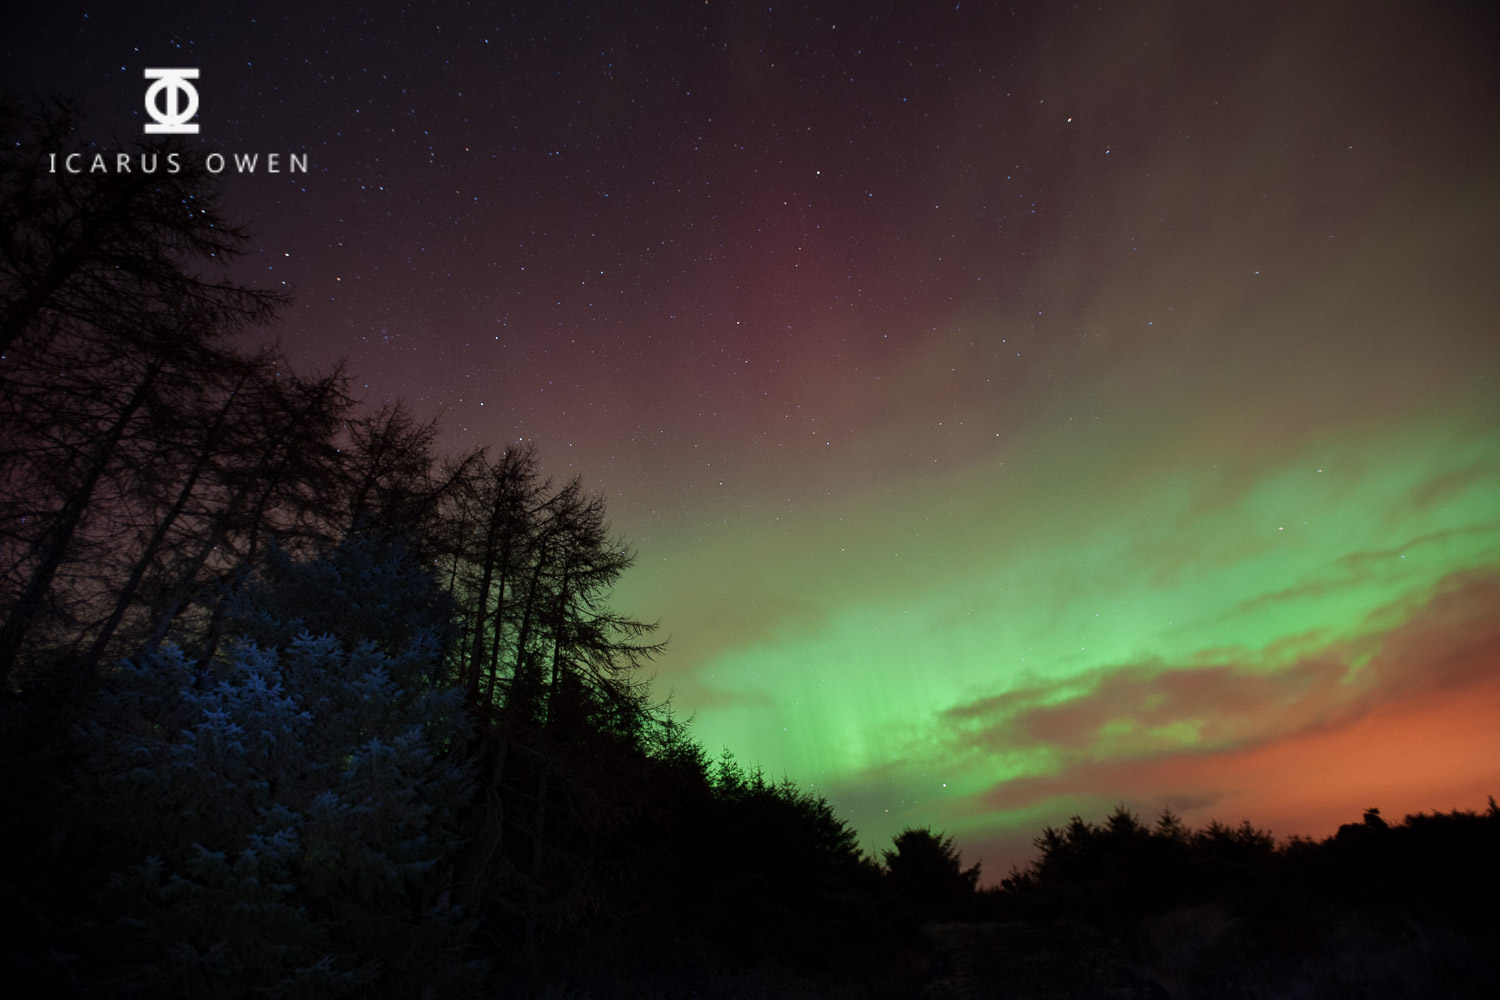 Aurora borealis - 2.8, 10 secs, ISO 1250 - with a little light painting using a torch.